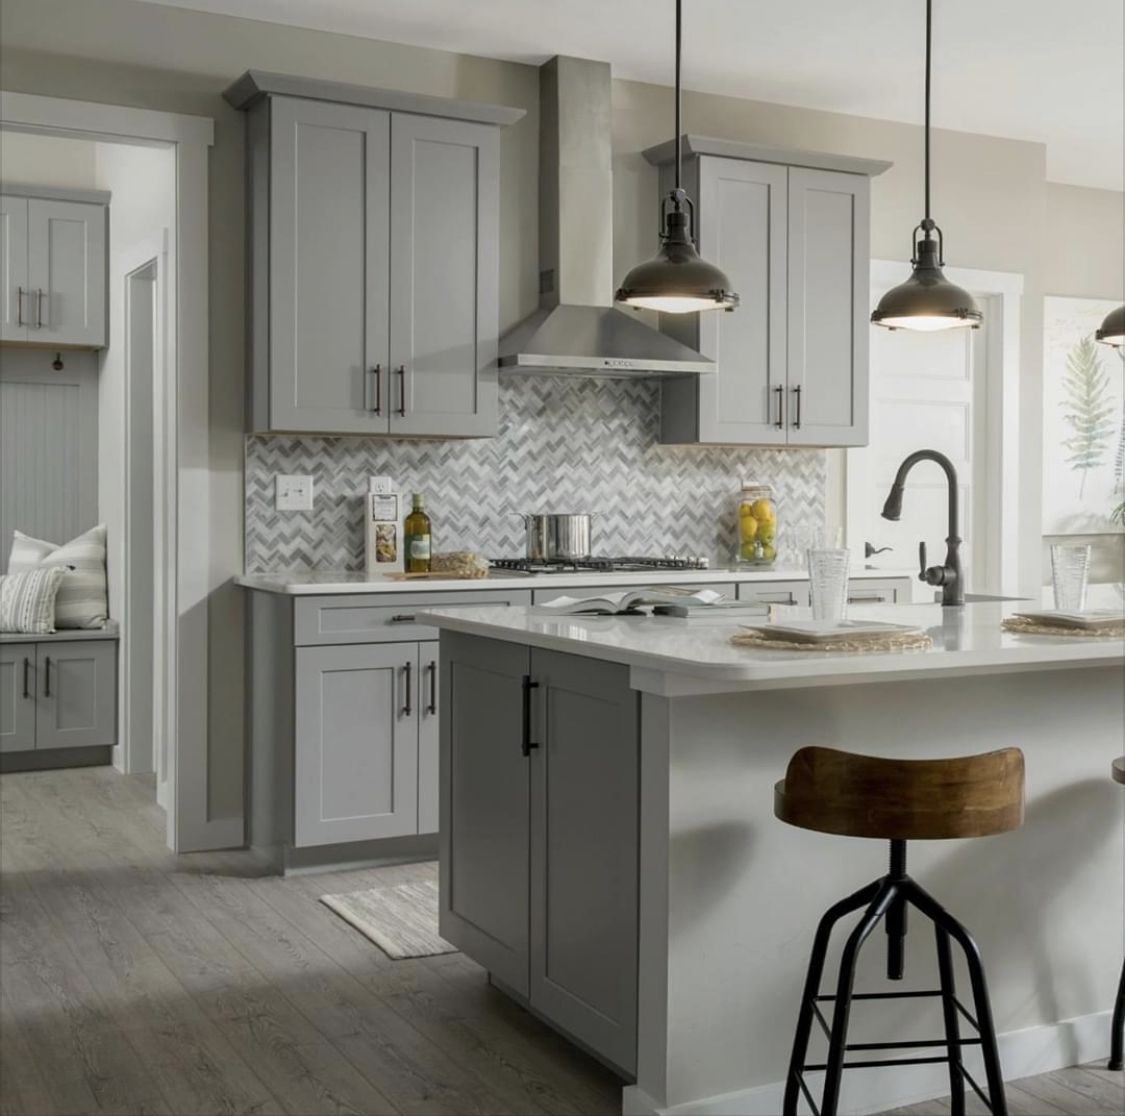 Sherwin Williams Agreeable Gray Cabinets End Of Island Cabinet In 2020 Agreeable Gray Sherwin Williams Kitchen Agreeable Gray Sherwin Williams Grey Cabinets